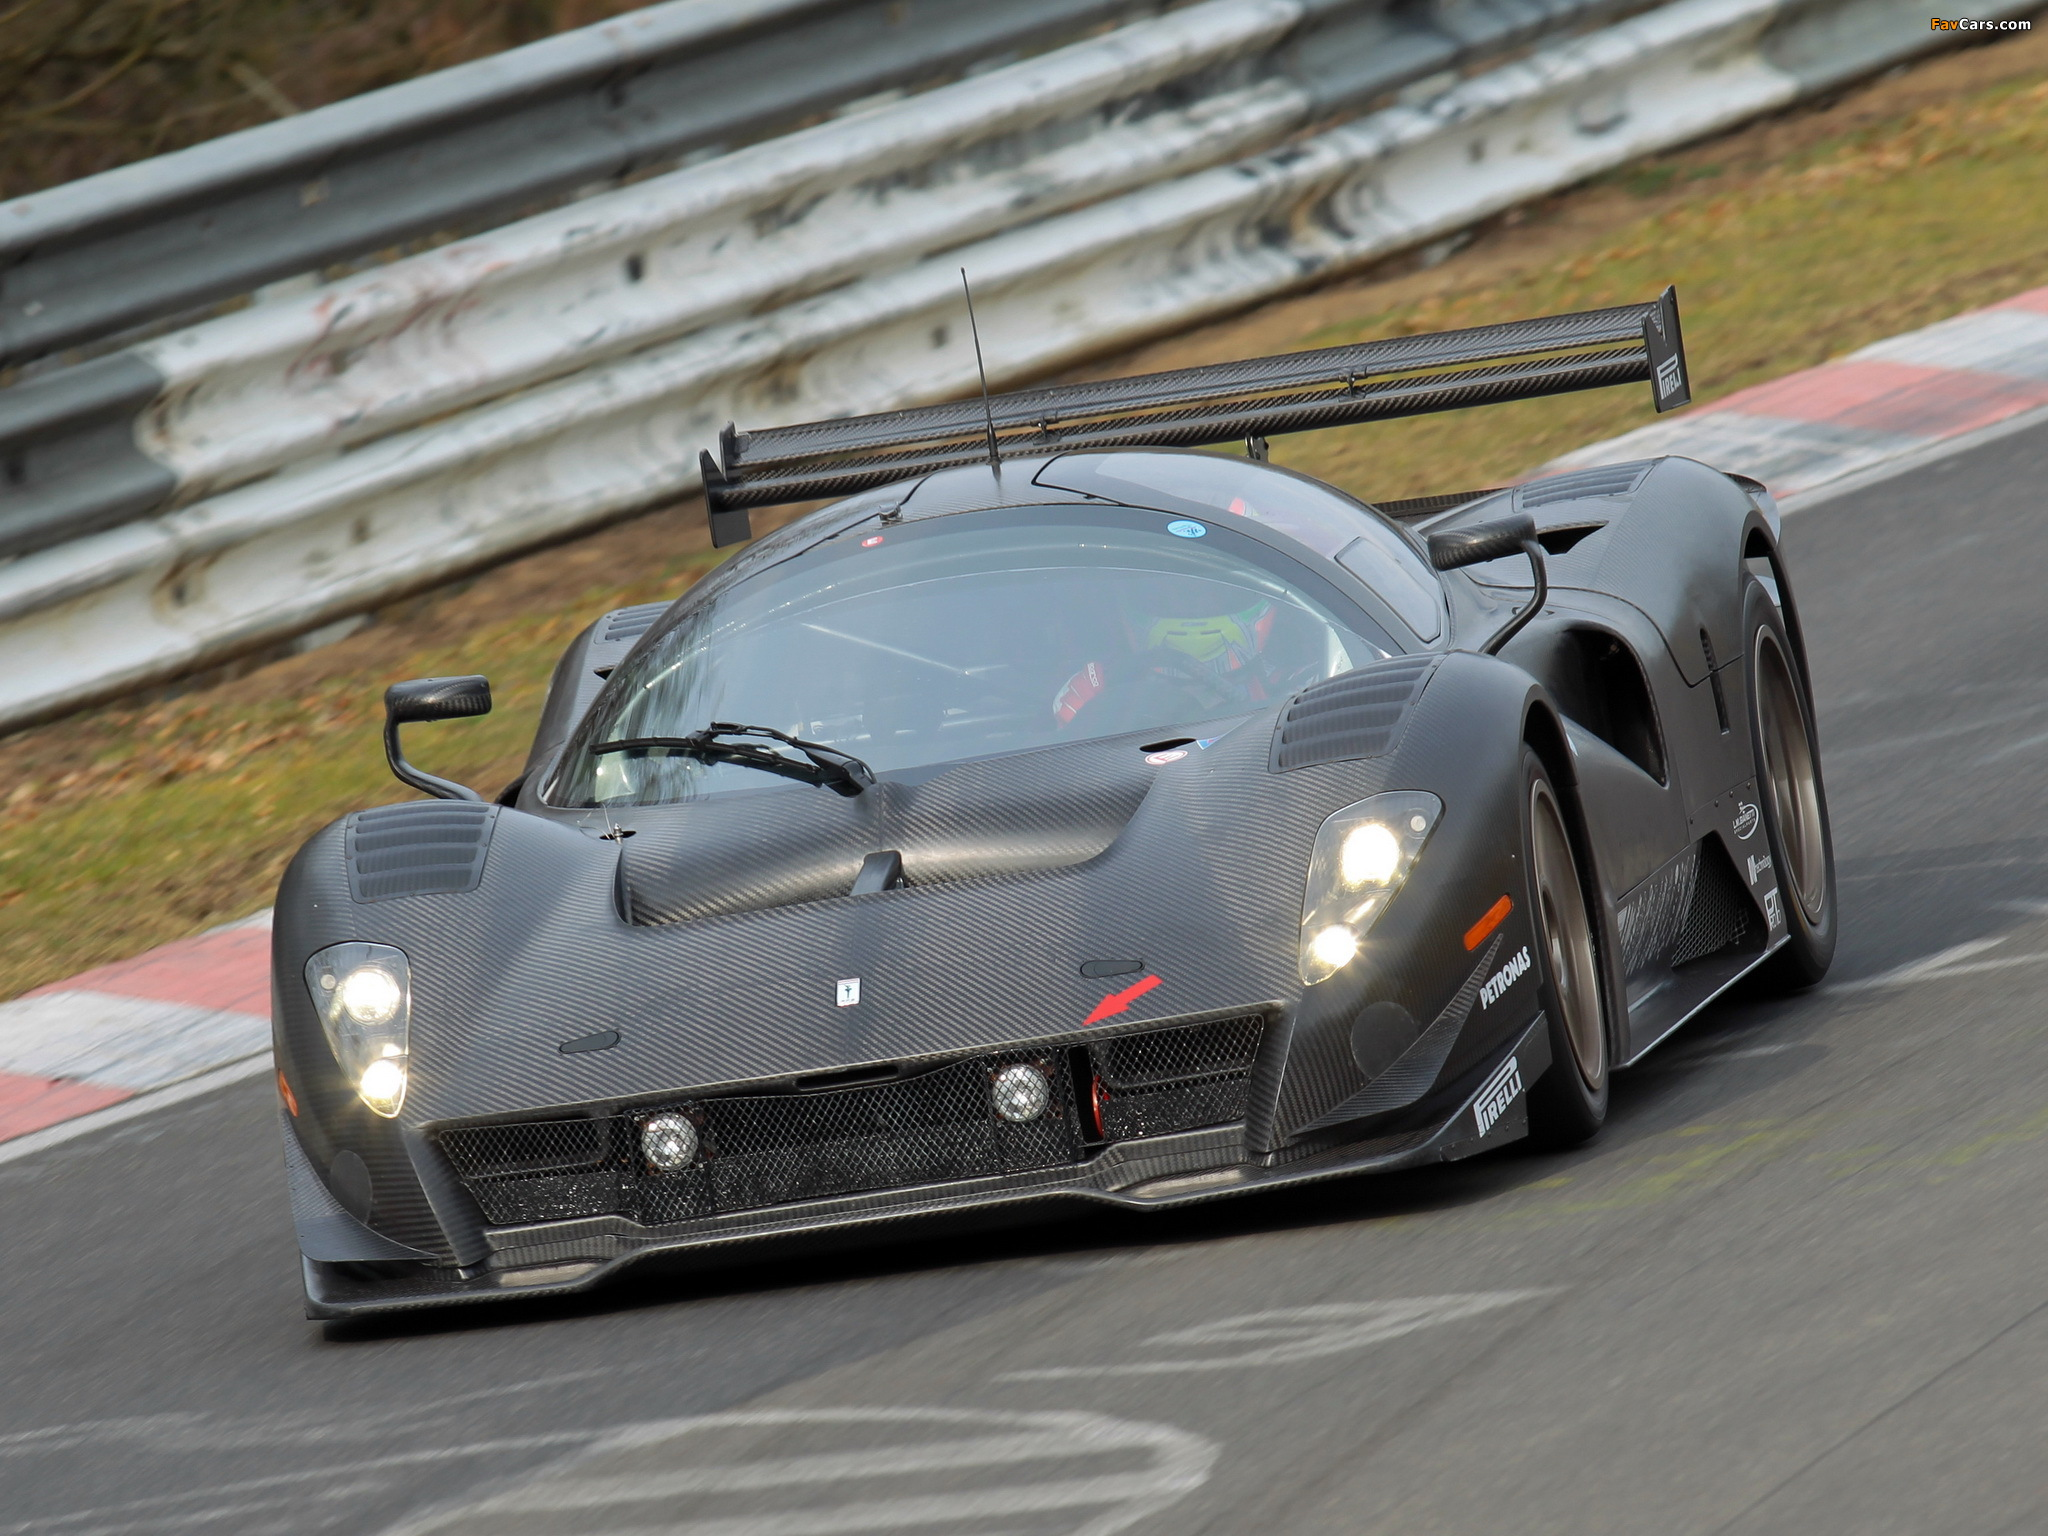 N.Technology P4/5 Competizione 2011 images (2048 x 1536)